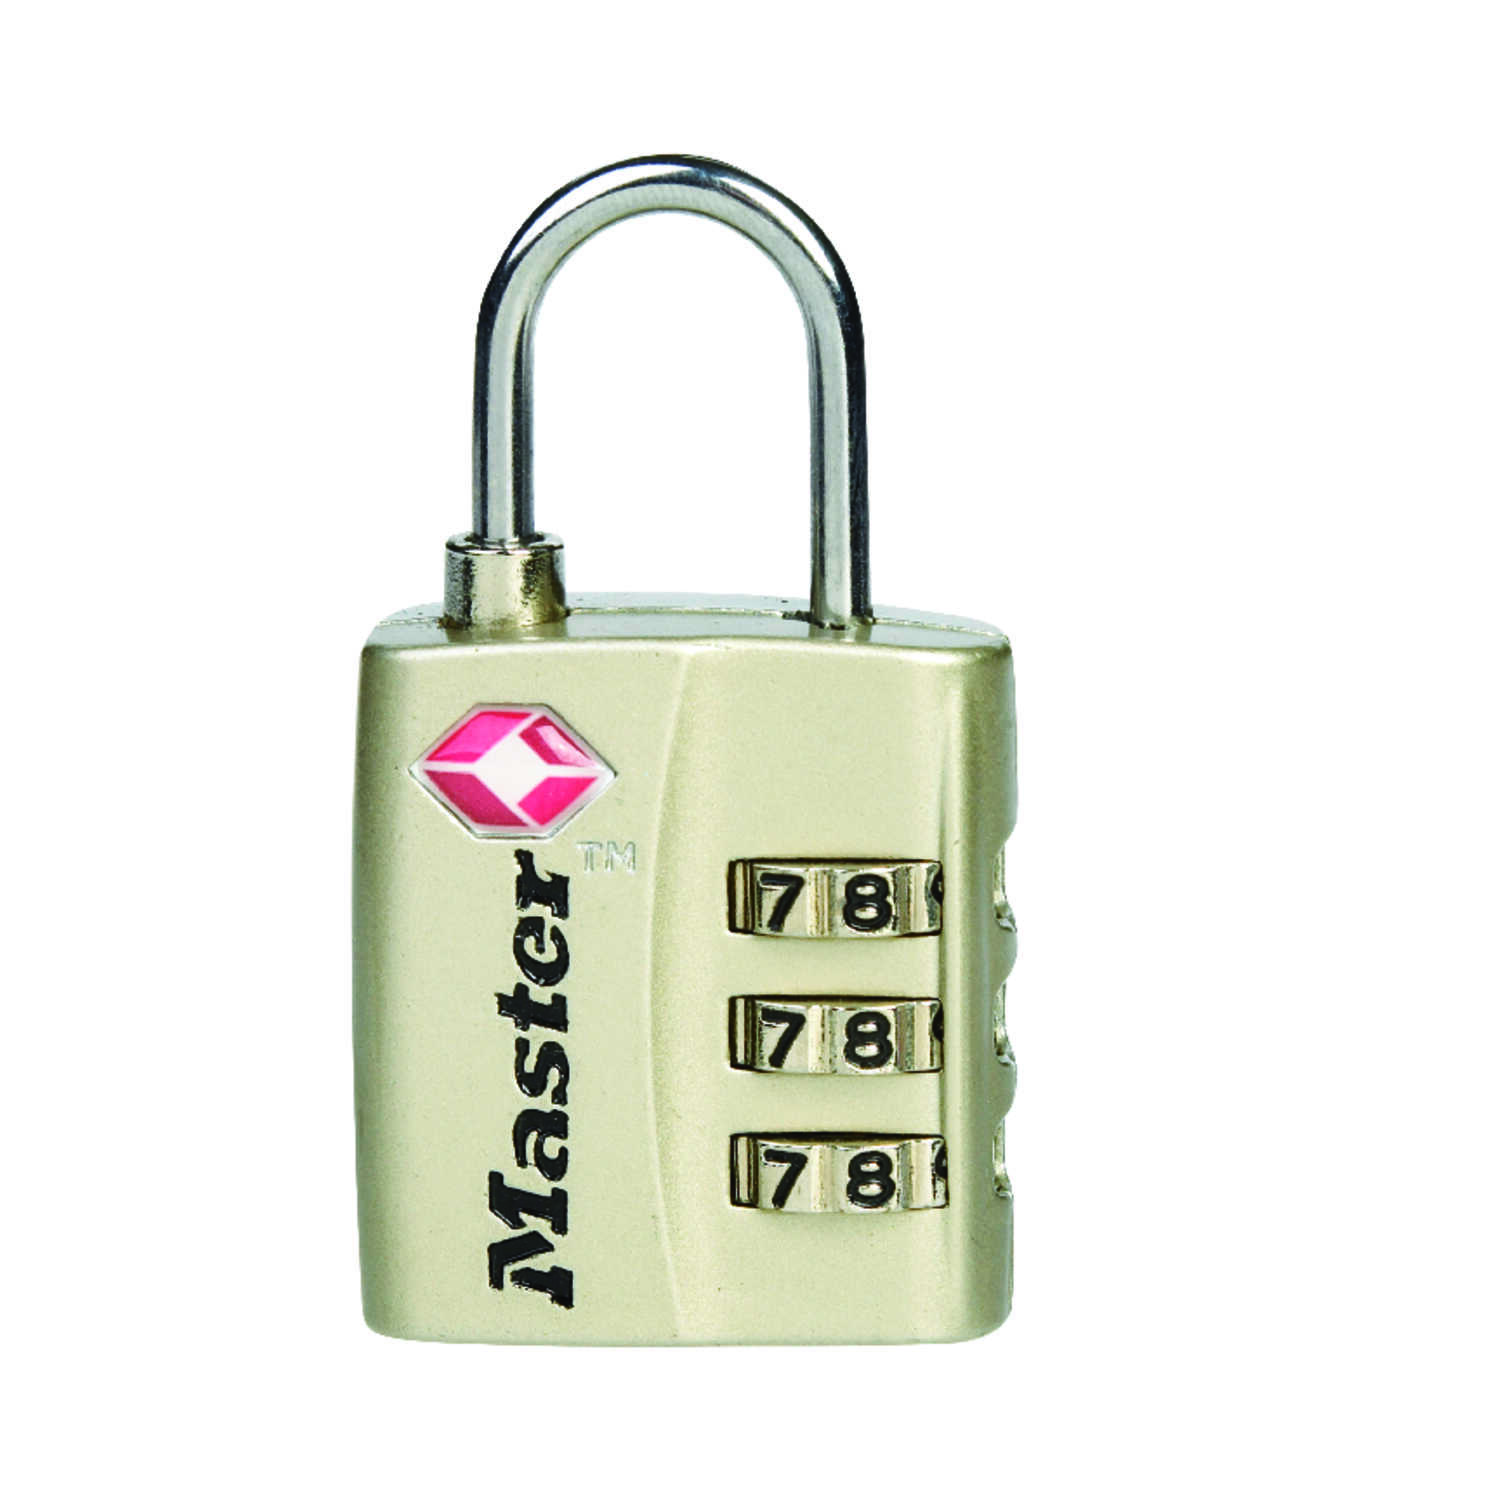 Master Lock  1-5/16 in. H x 3/8 in. W x 1-3/16 in. L Metal  3-Dial Combination  Luggage Lock  1 each